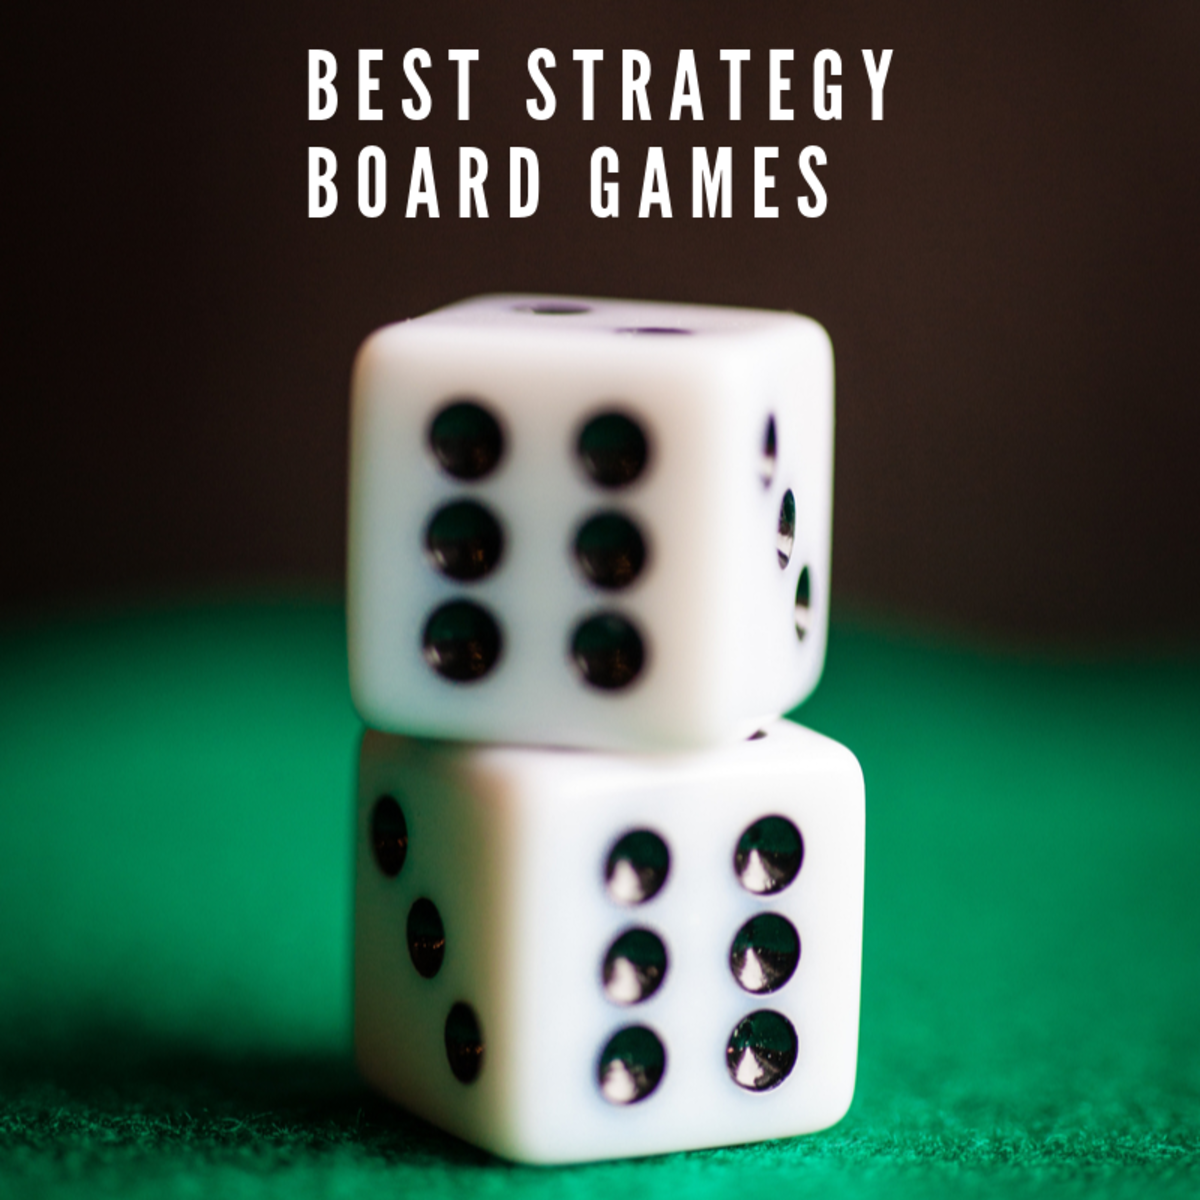 10-best-strategy-board-games-ever-great-to-play-with-family-or-for-christmas-birthday-gifts